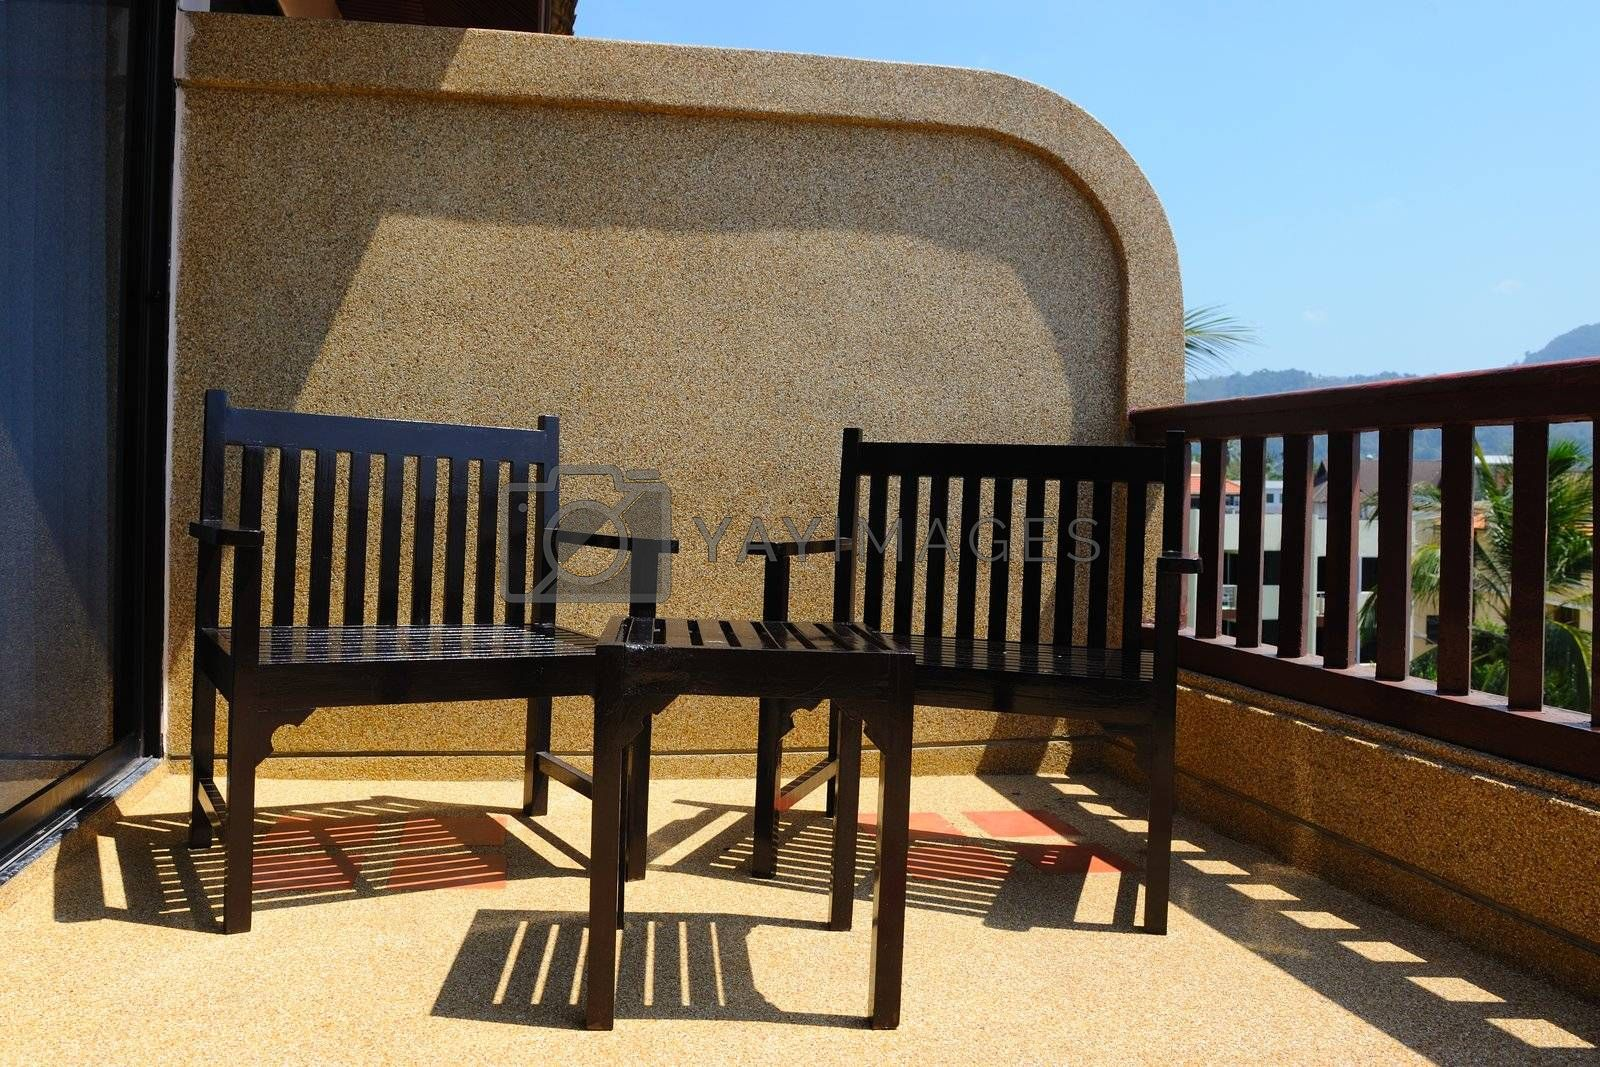 Table and chairs on the sunny balcony